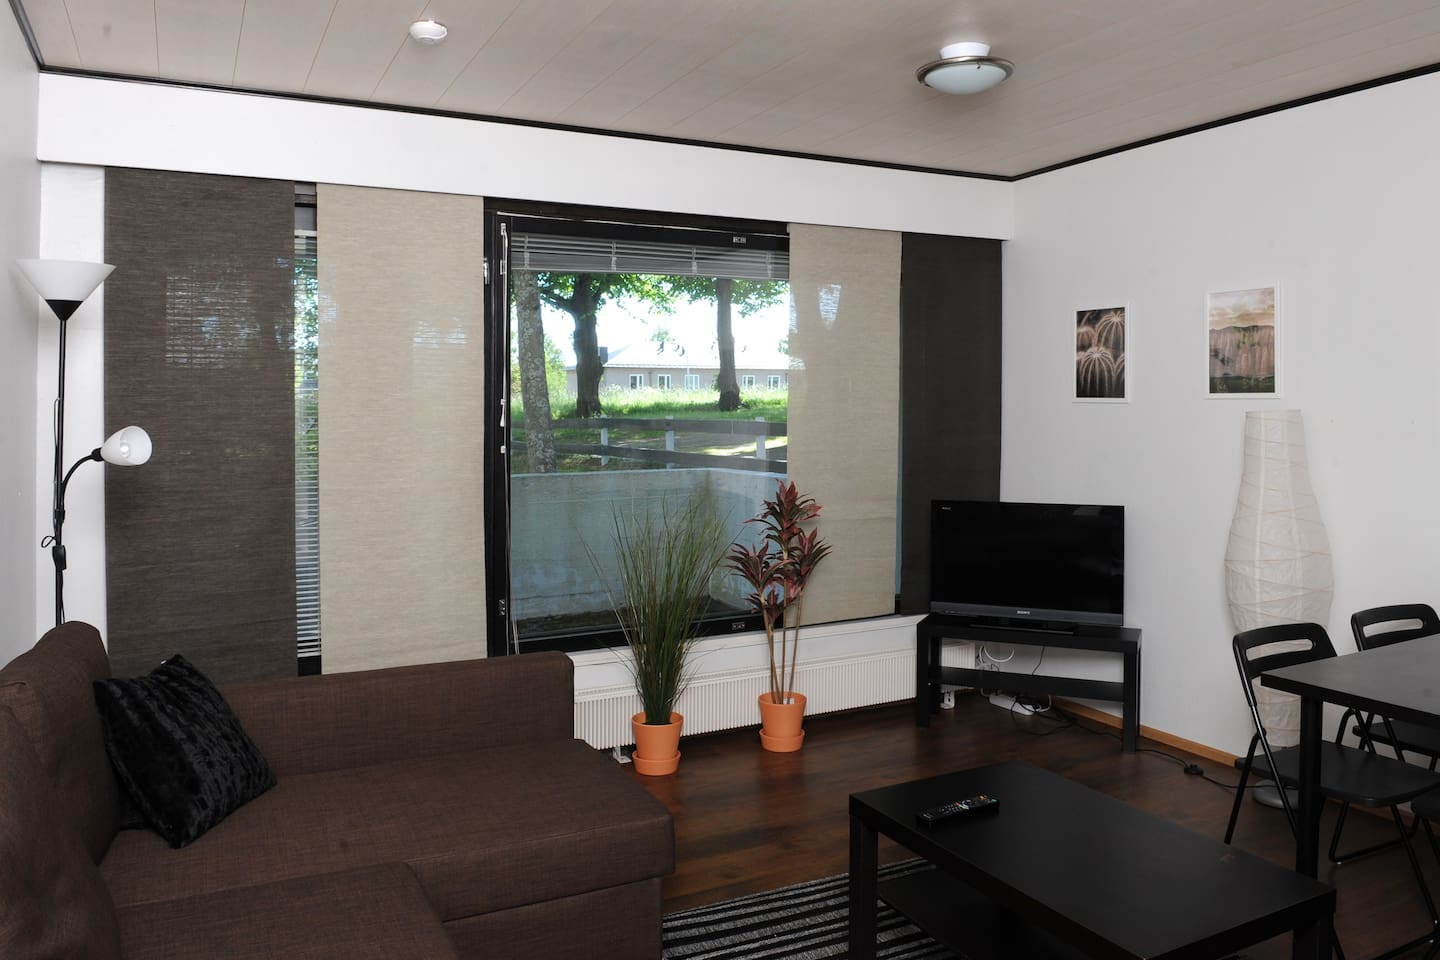 Living room and the view to backyard.